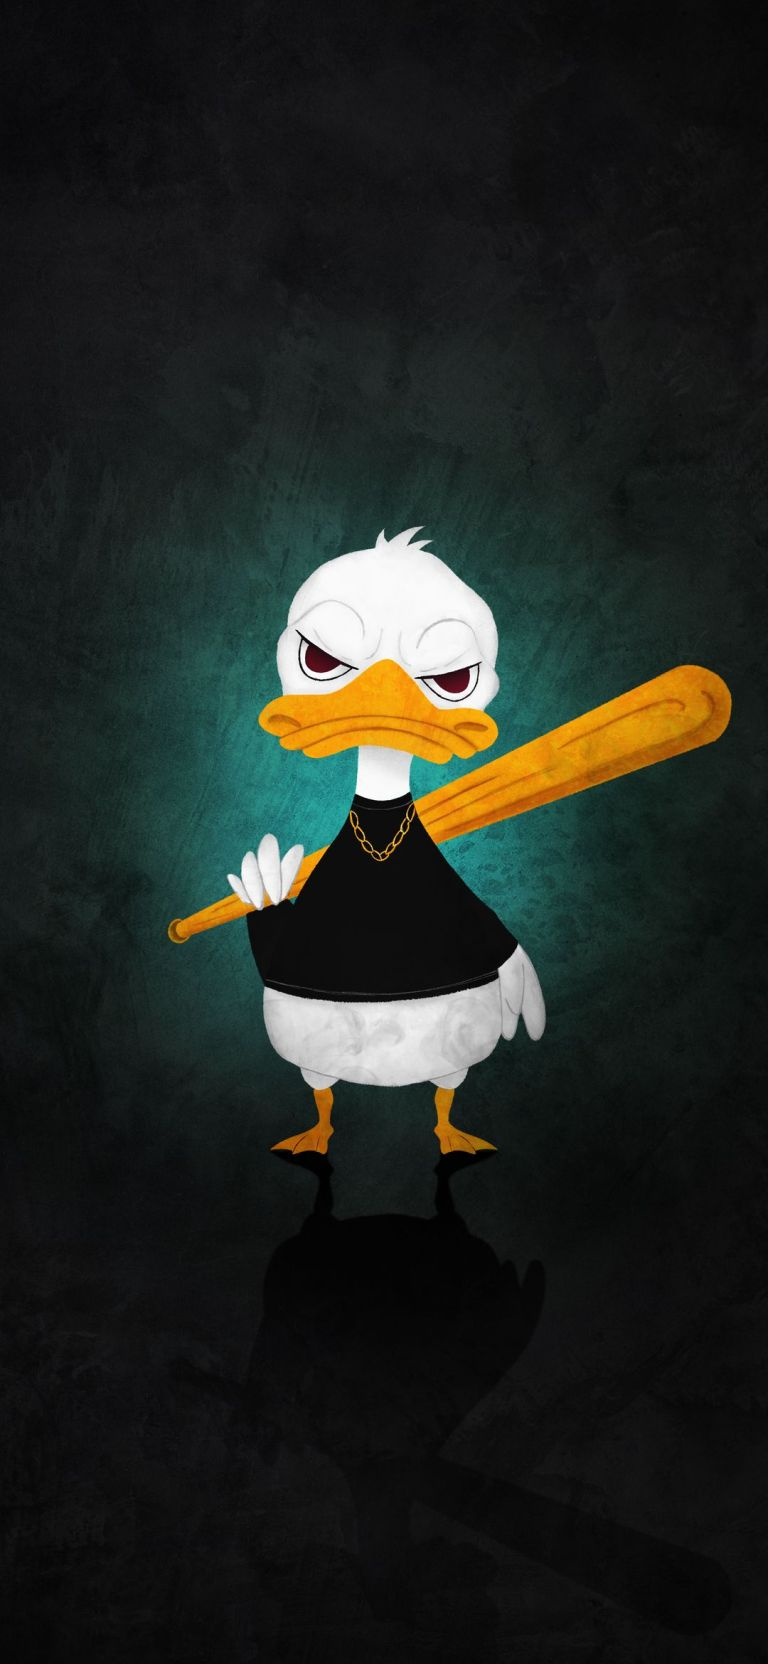 Angry Duck With Baseball Racket Amoled OnePlus 8 Wallpaper